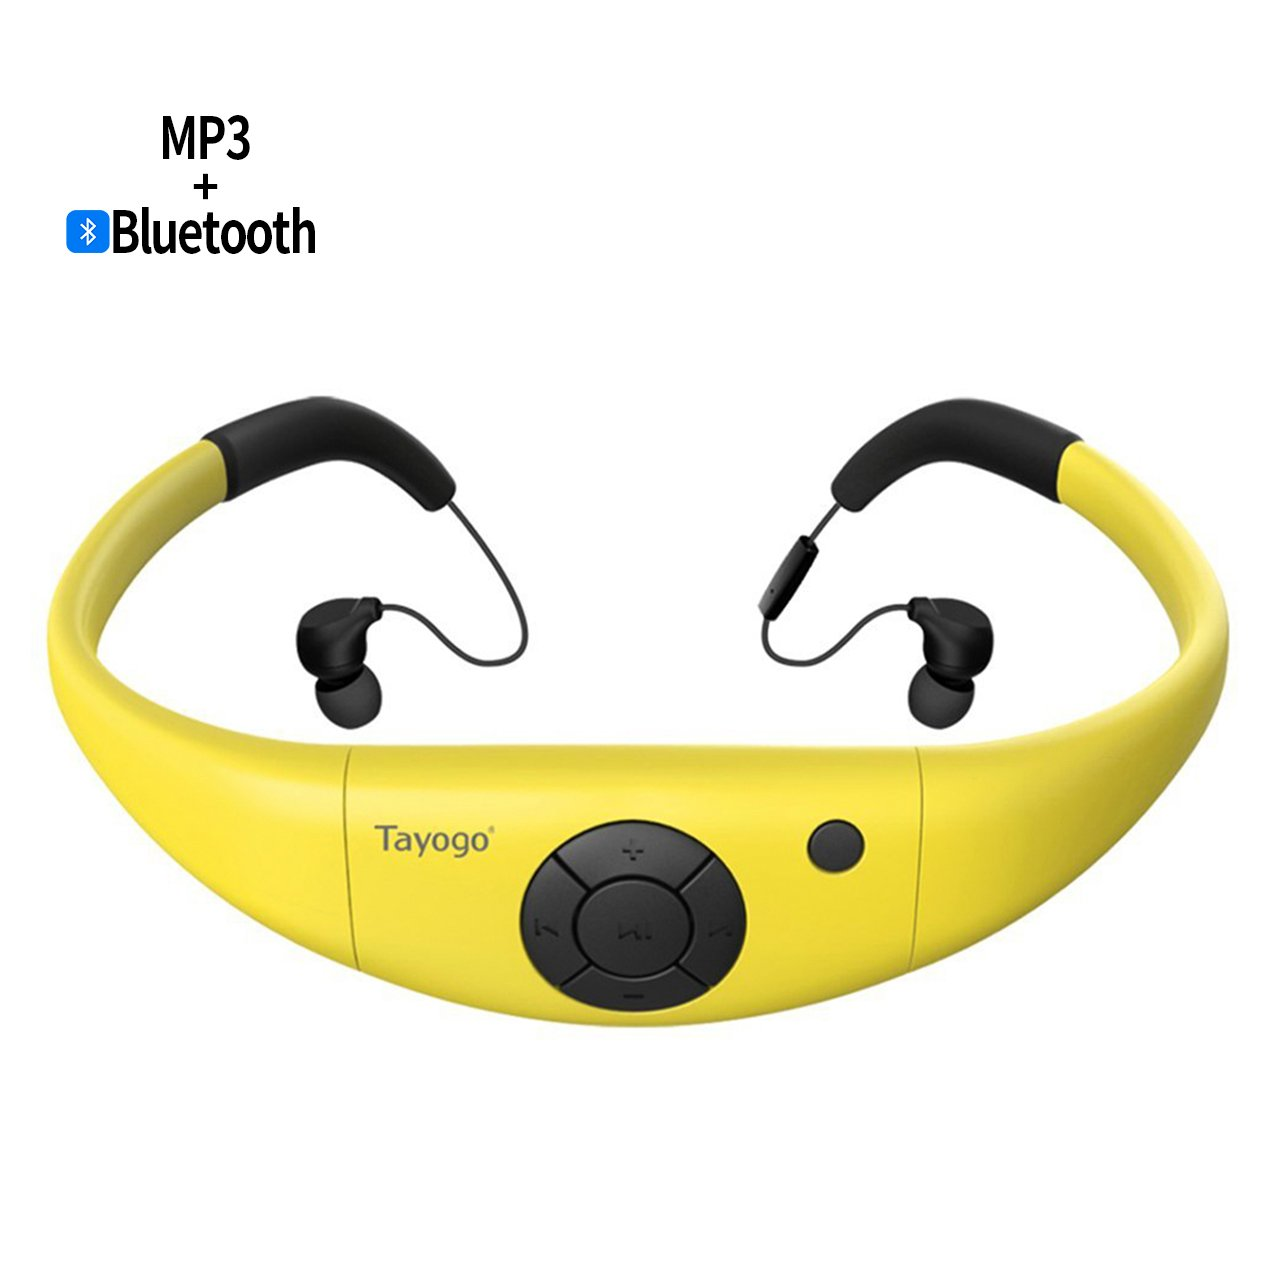 Tayogo 8GB Waterproof MP3 Player, Bluetooth Swimming Headset Underwater 10FT with FM APP Flash Drive for Swimming Running Riding Walking Spa, with Shuffle Feature - Yellow